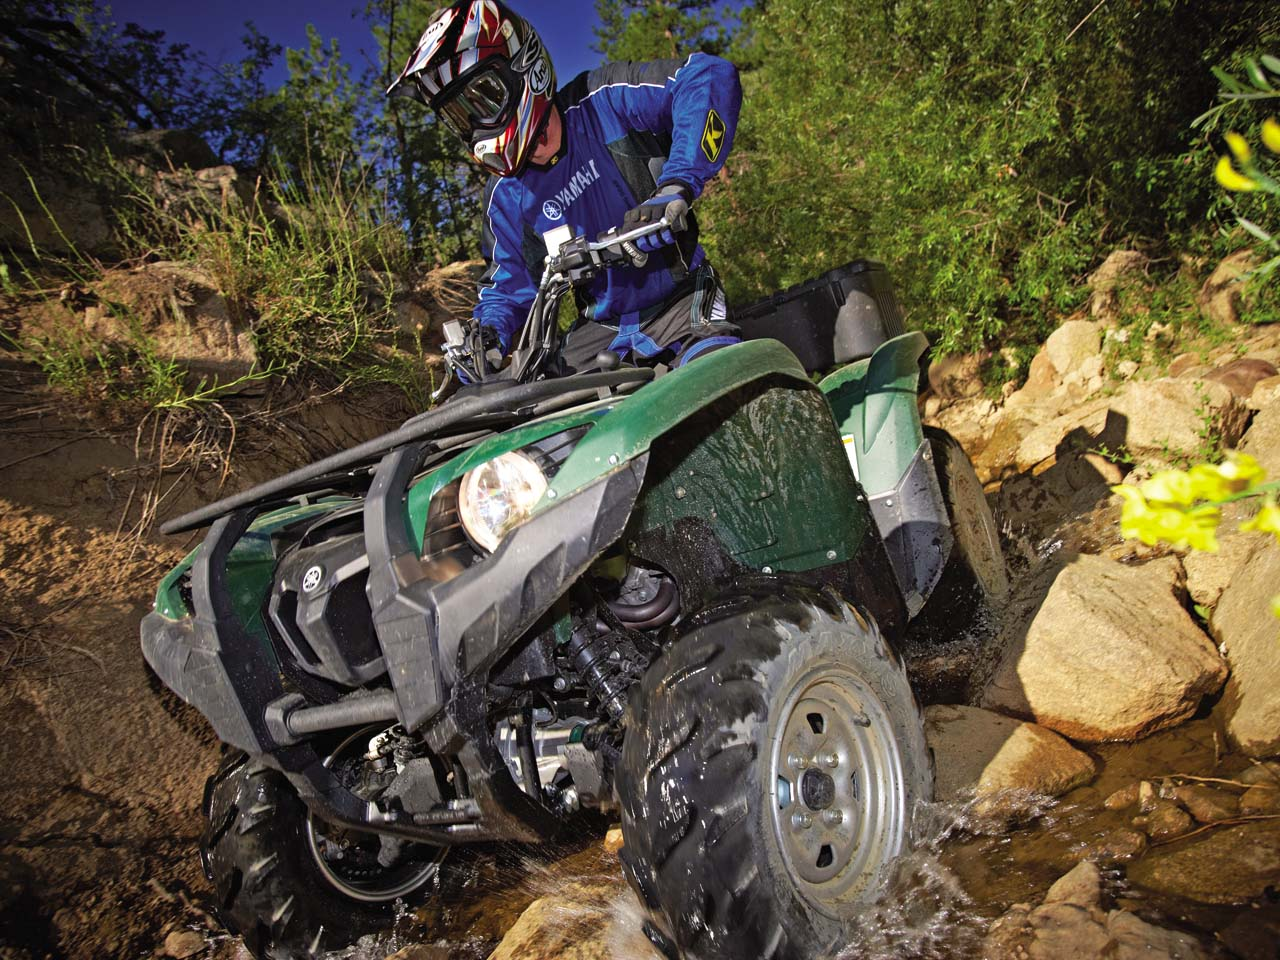 2012 yamaha grizzly 700 fi review atv illustrated for Yamaha grizzly 1000cc